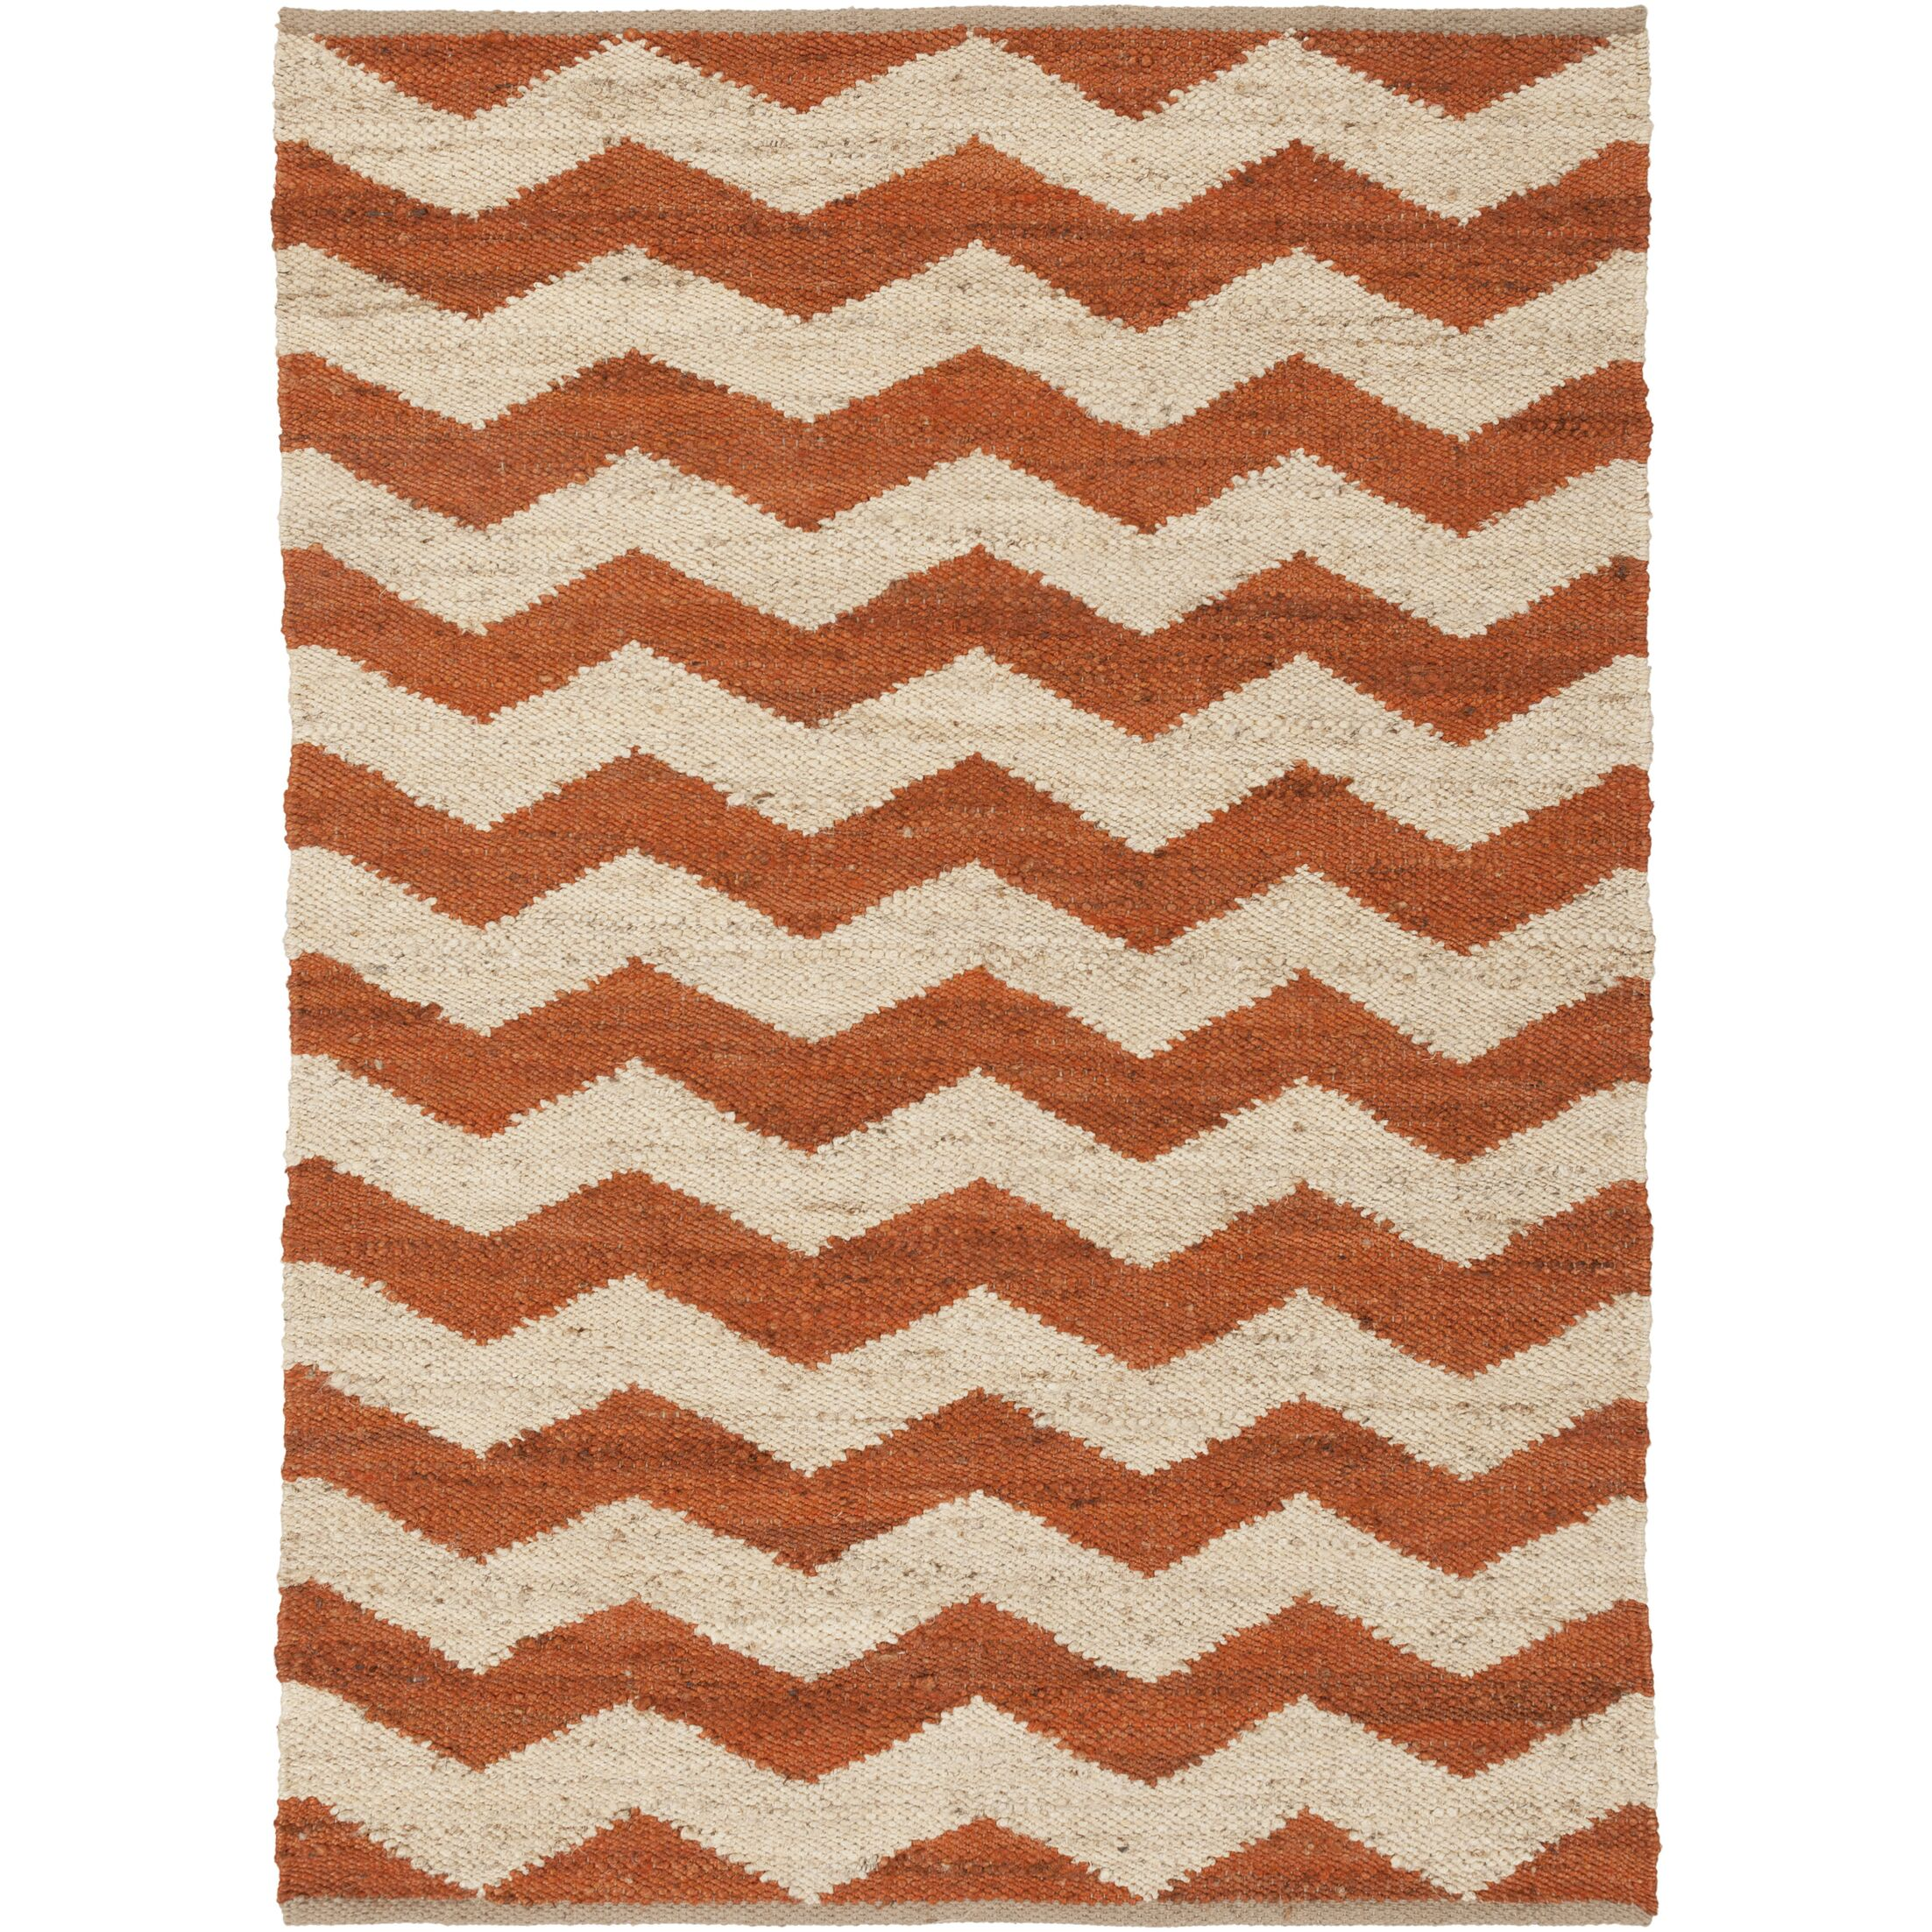 Woodcroft Hand-Woven Burnt Orange/Cream Area Rug Rug Size: Rectangle 5' x 7'6